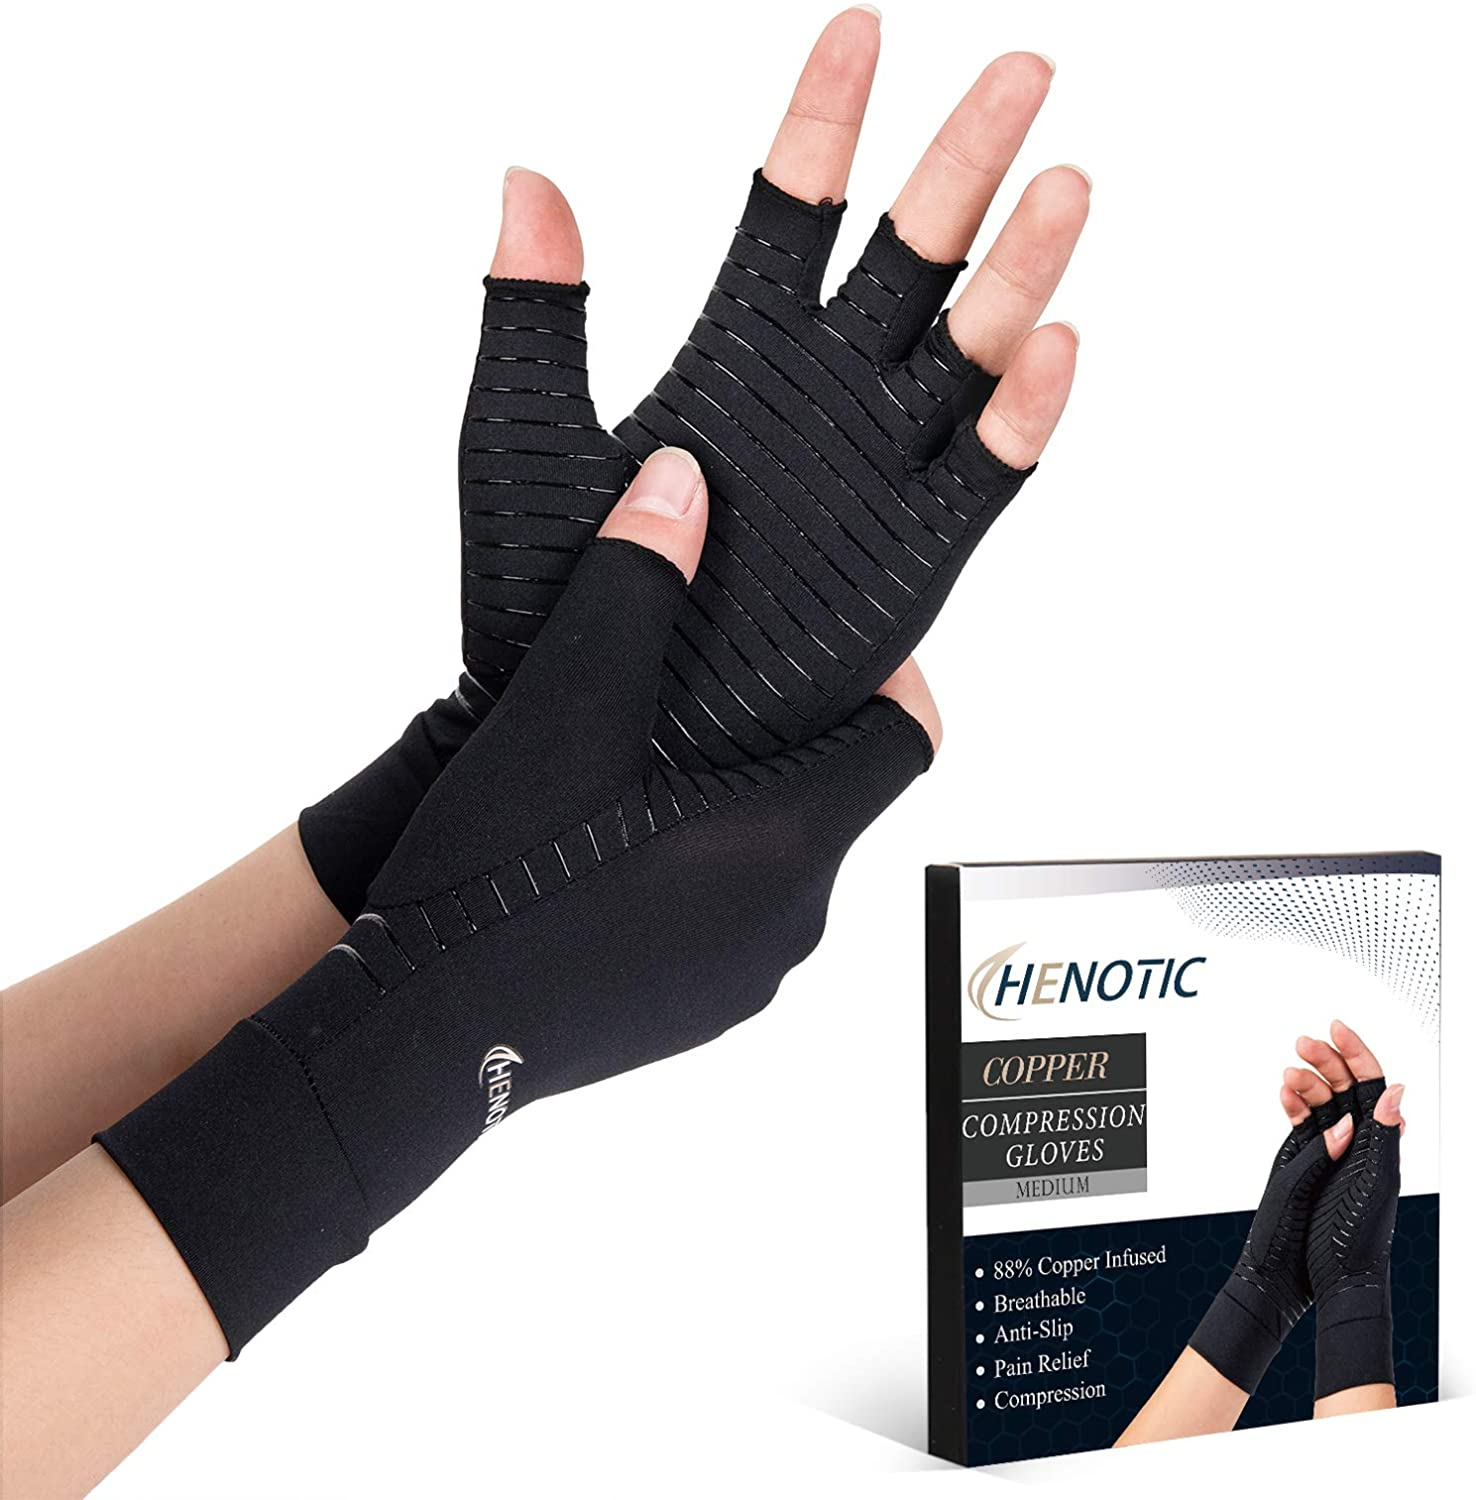 Copper Compression Gloves for Women Men, Fingerless Breathable & Moisture Wicking Arthritis Compression Gloves for Relieving Carpal Tunnel Aches, Rheumatoid Pains, Joint Swell